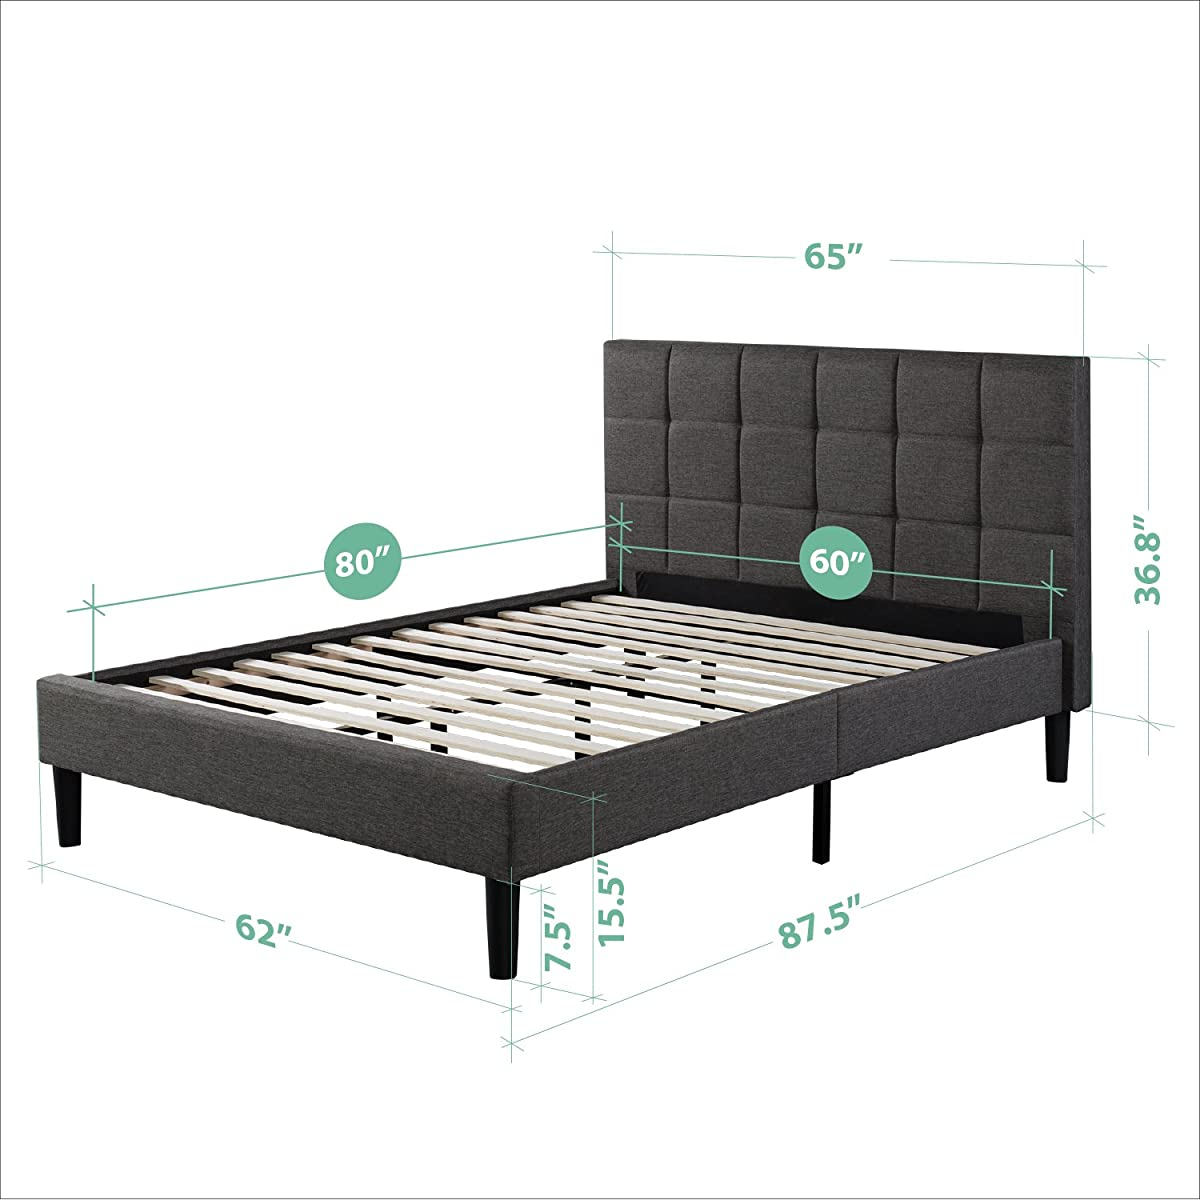 Zinus Upholstered Square Stitched Platform Bed with Wooden Slats, Queen